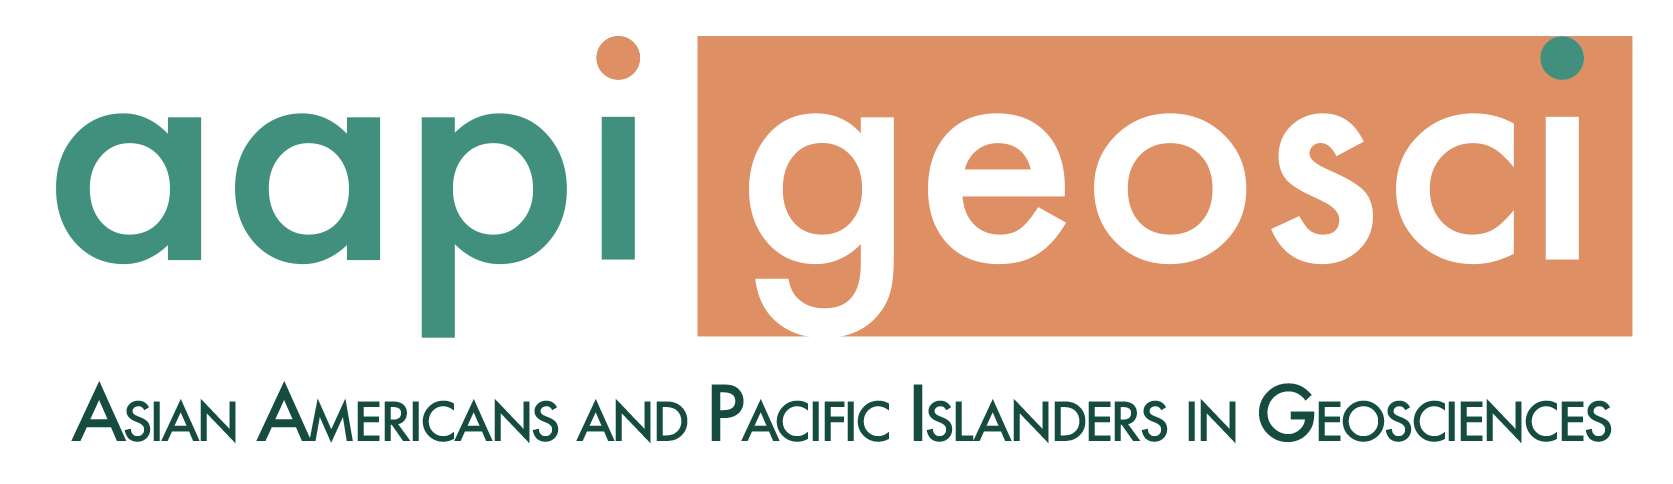 The AAPI in Geosci logo, which uses teal and brown colors.